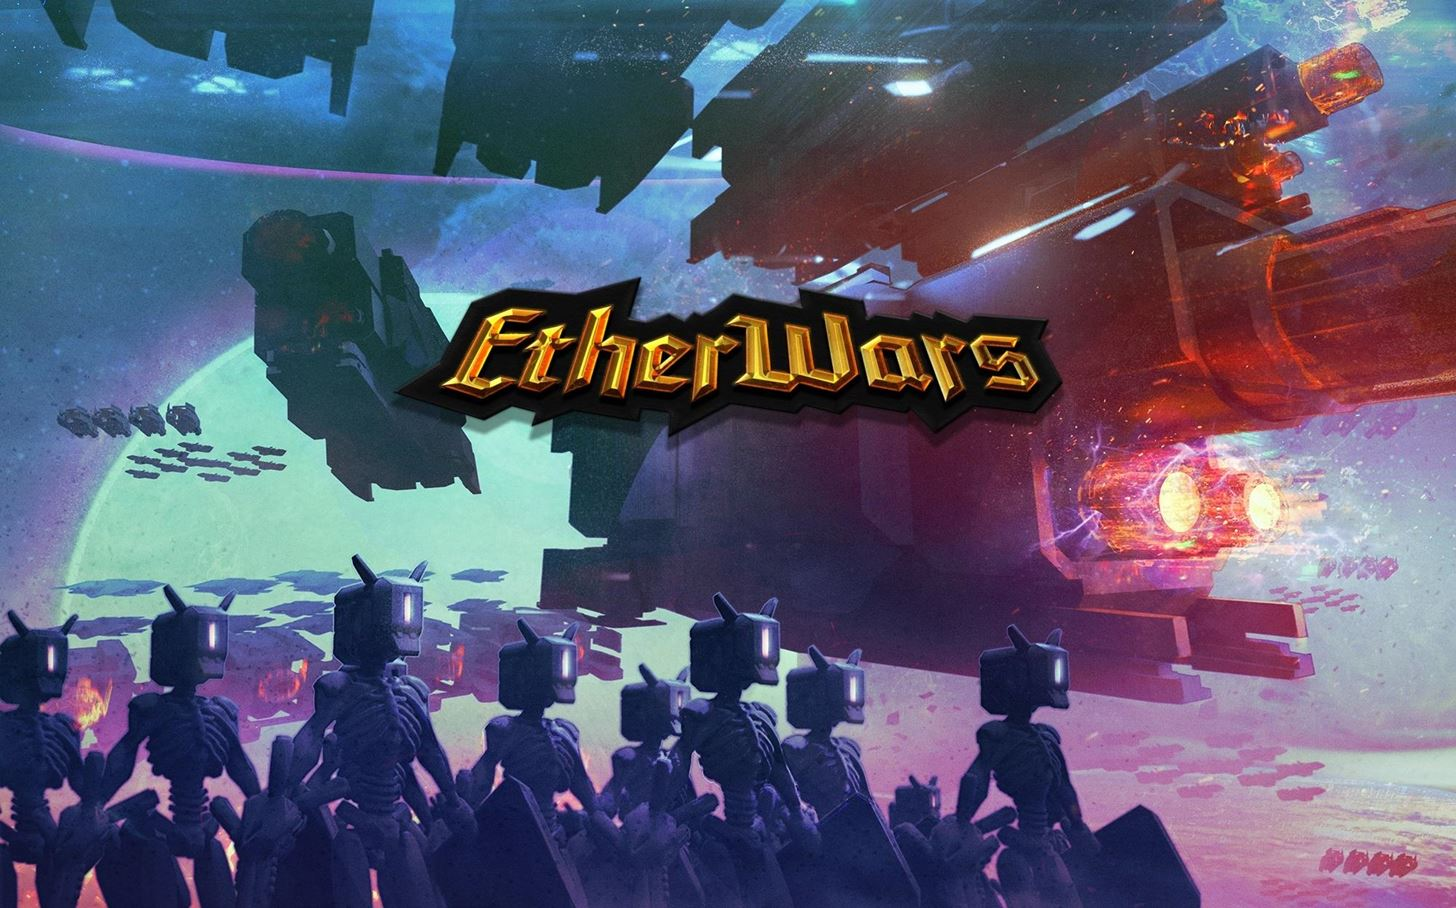 EtherWars Brings Real-Time Strategic Space Battles into the Living Room